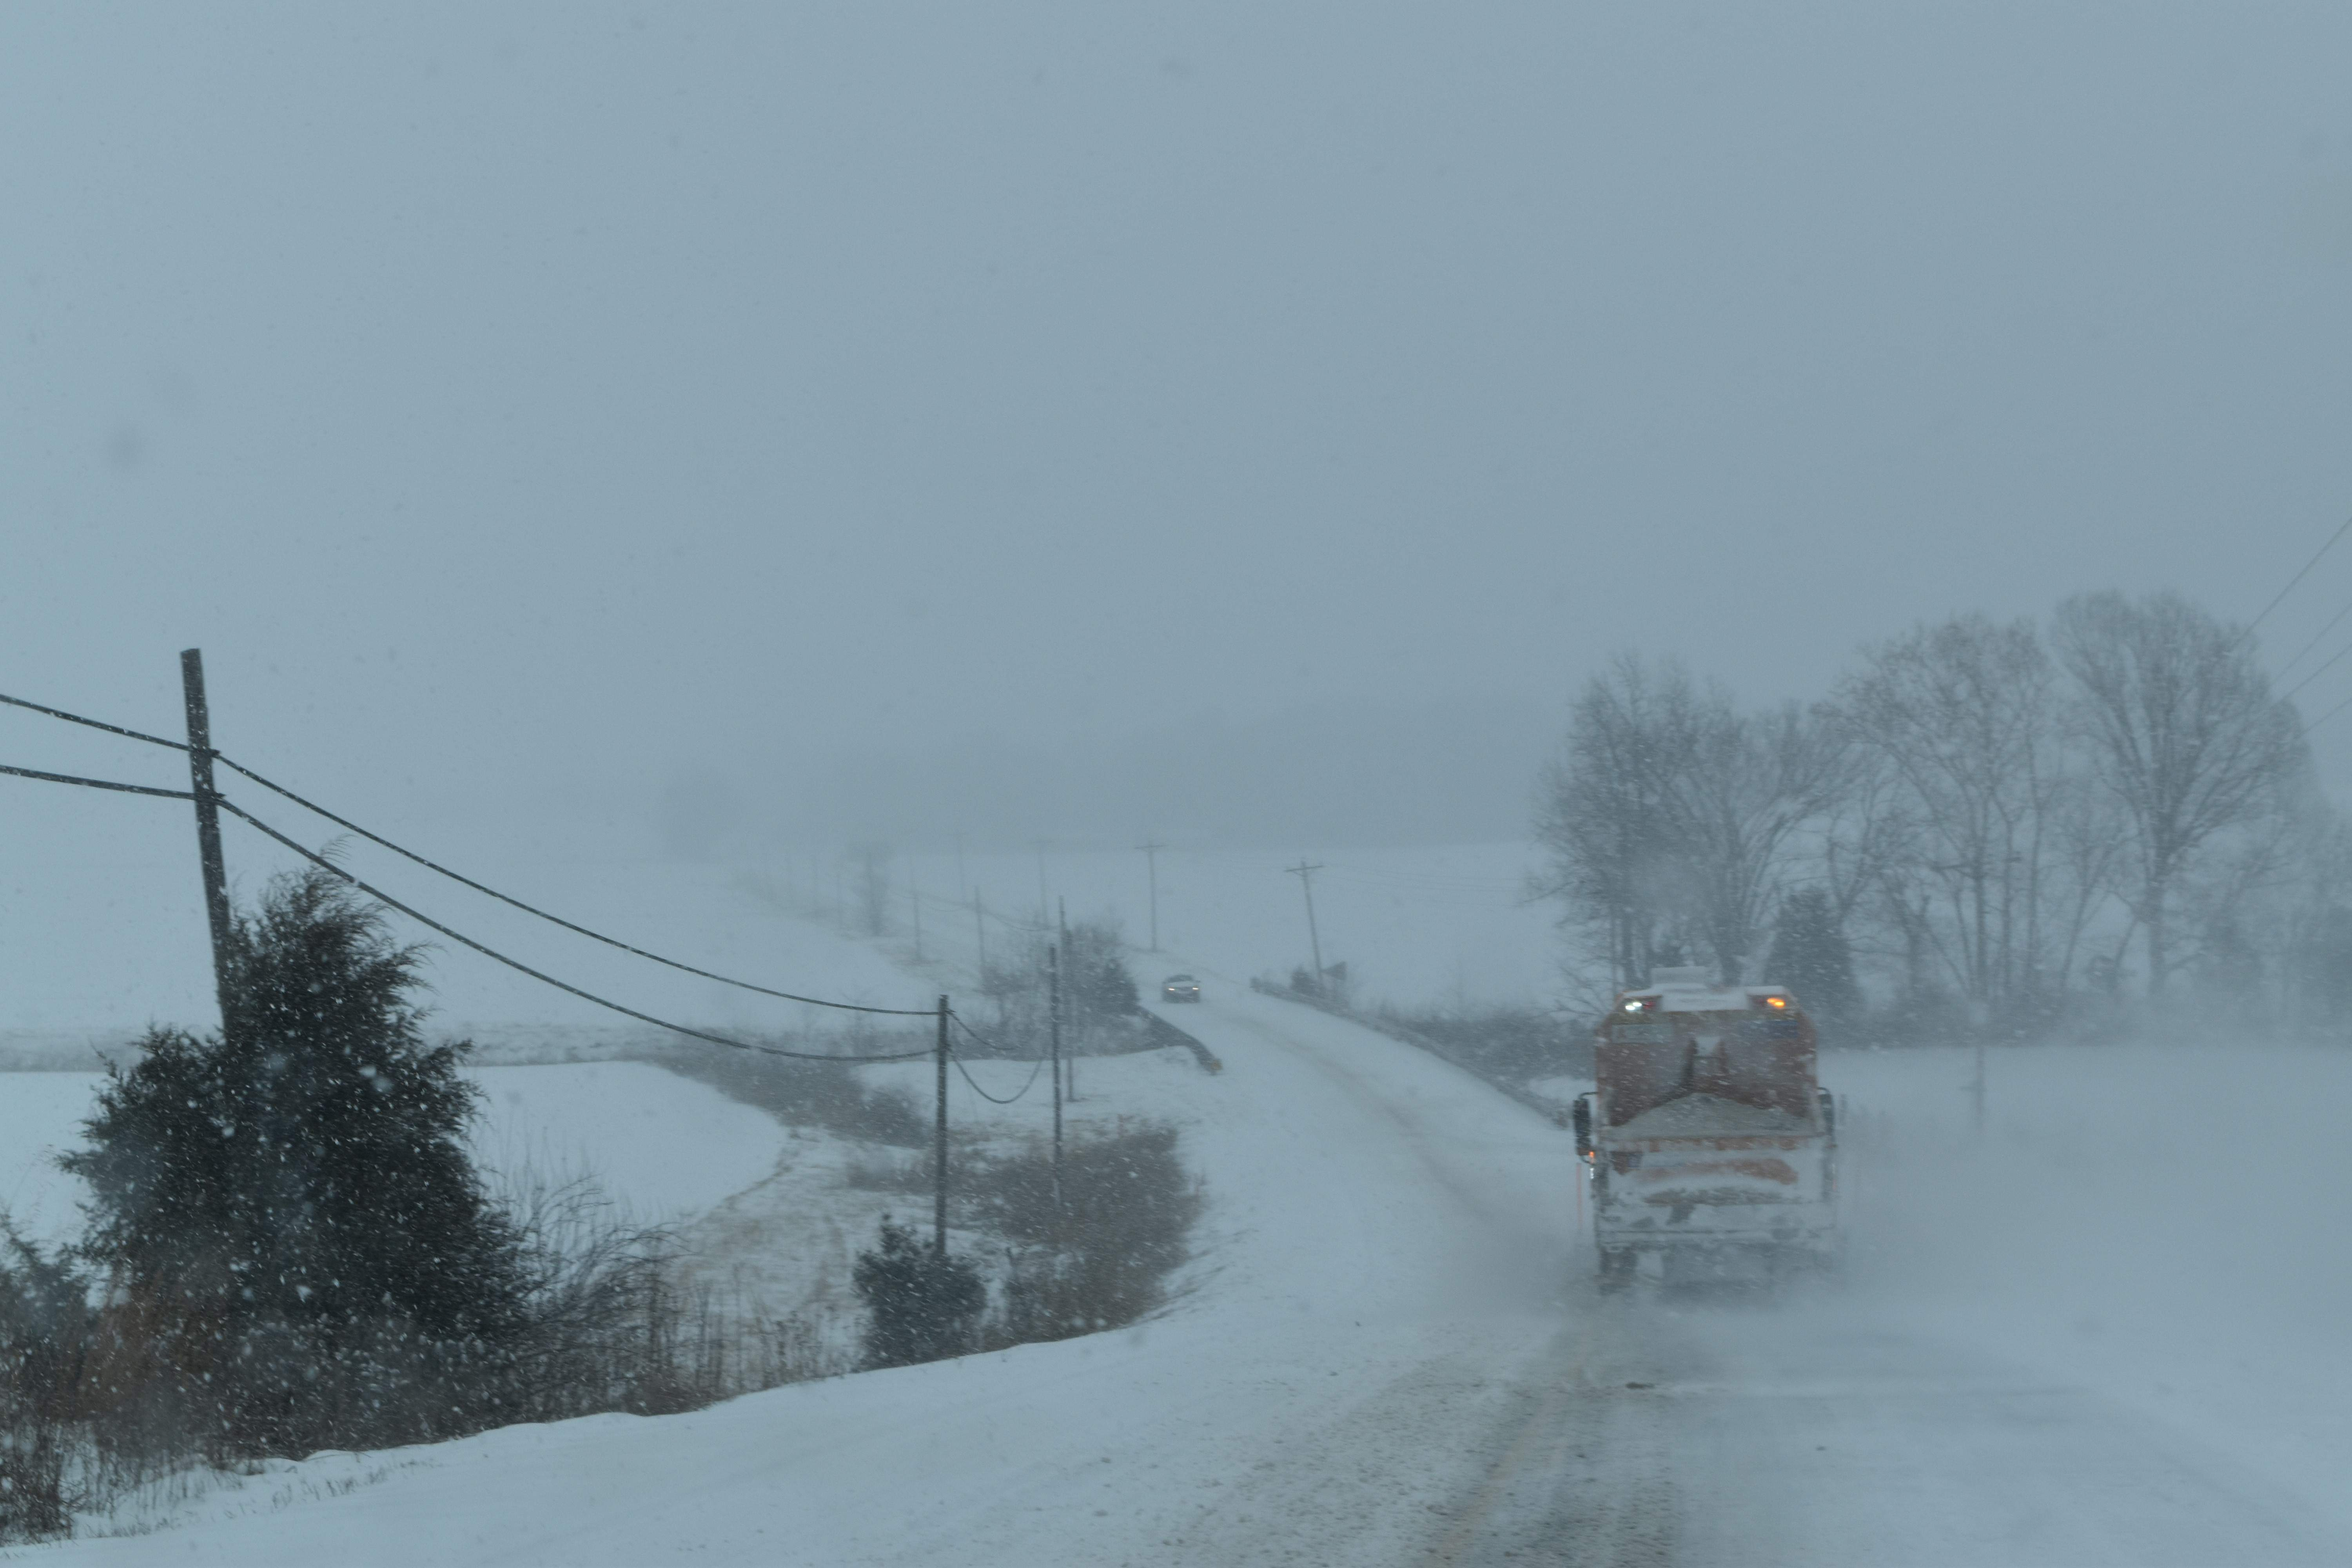 A lonely snowplow does its work on Illinois 34 south, near Illinois 145.